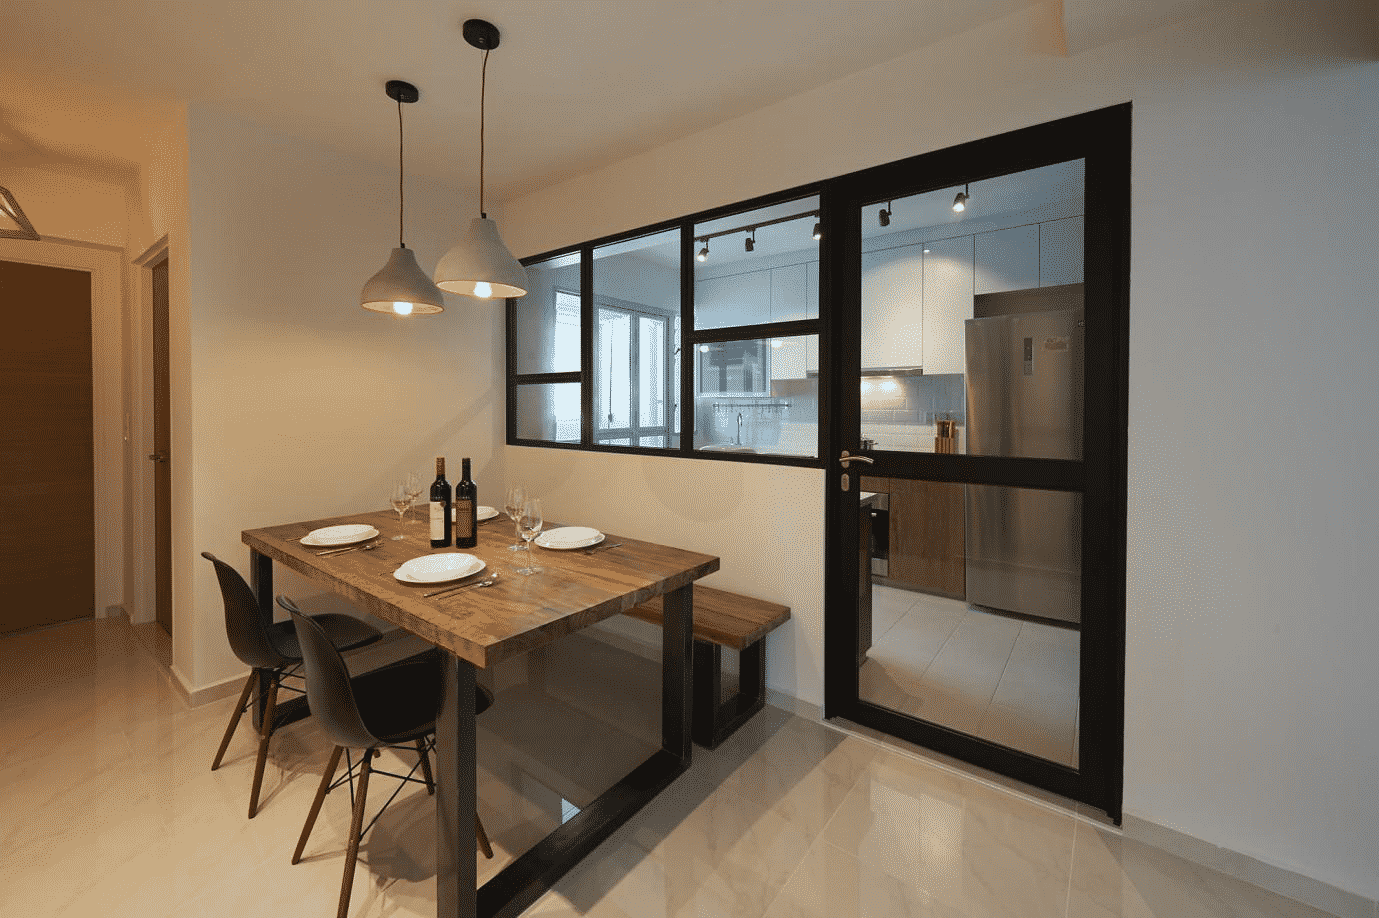 How Design 3 Room Bto With Totally Hotel Like Interior